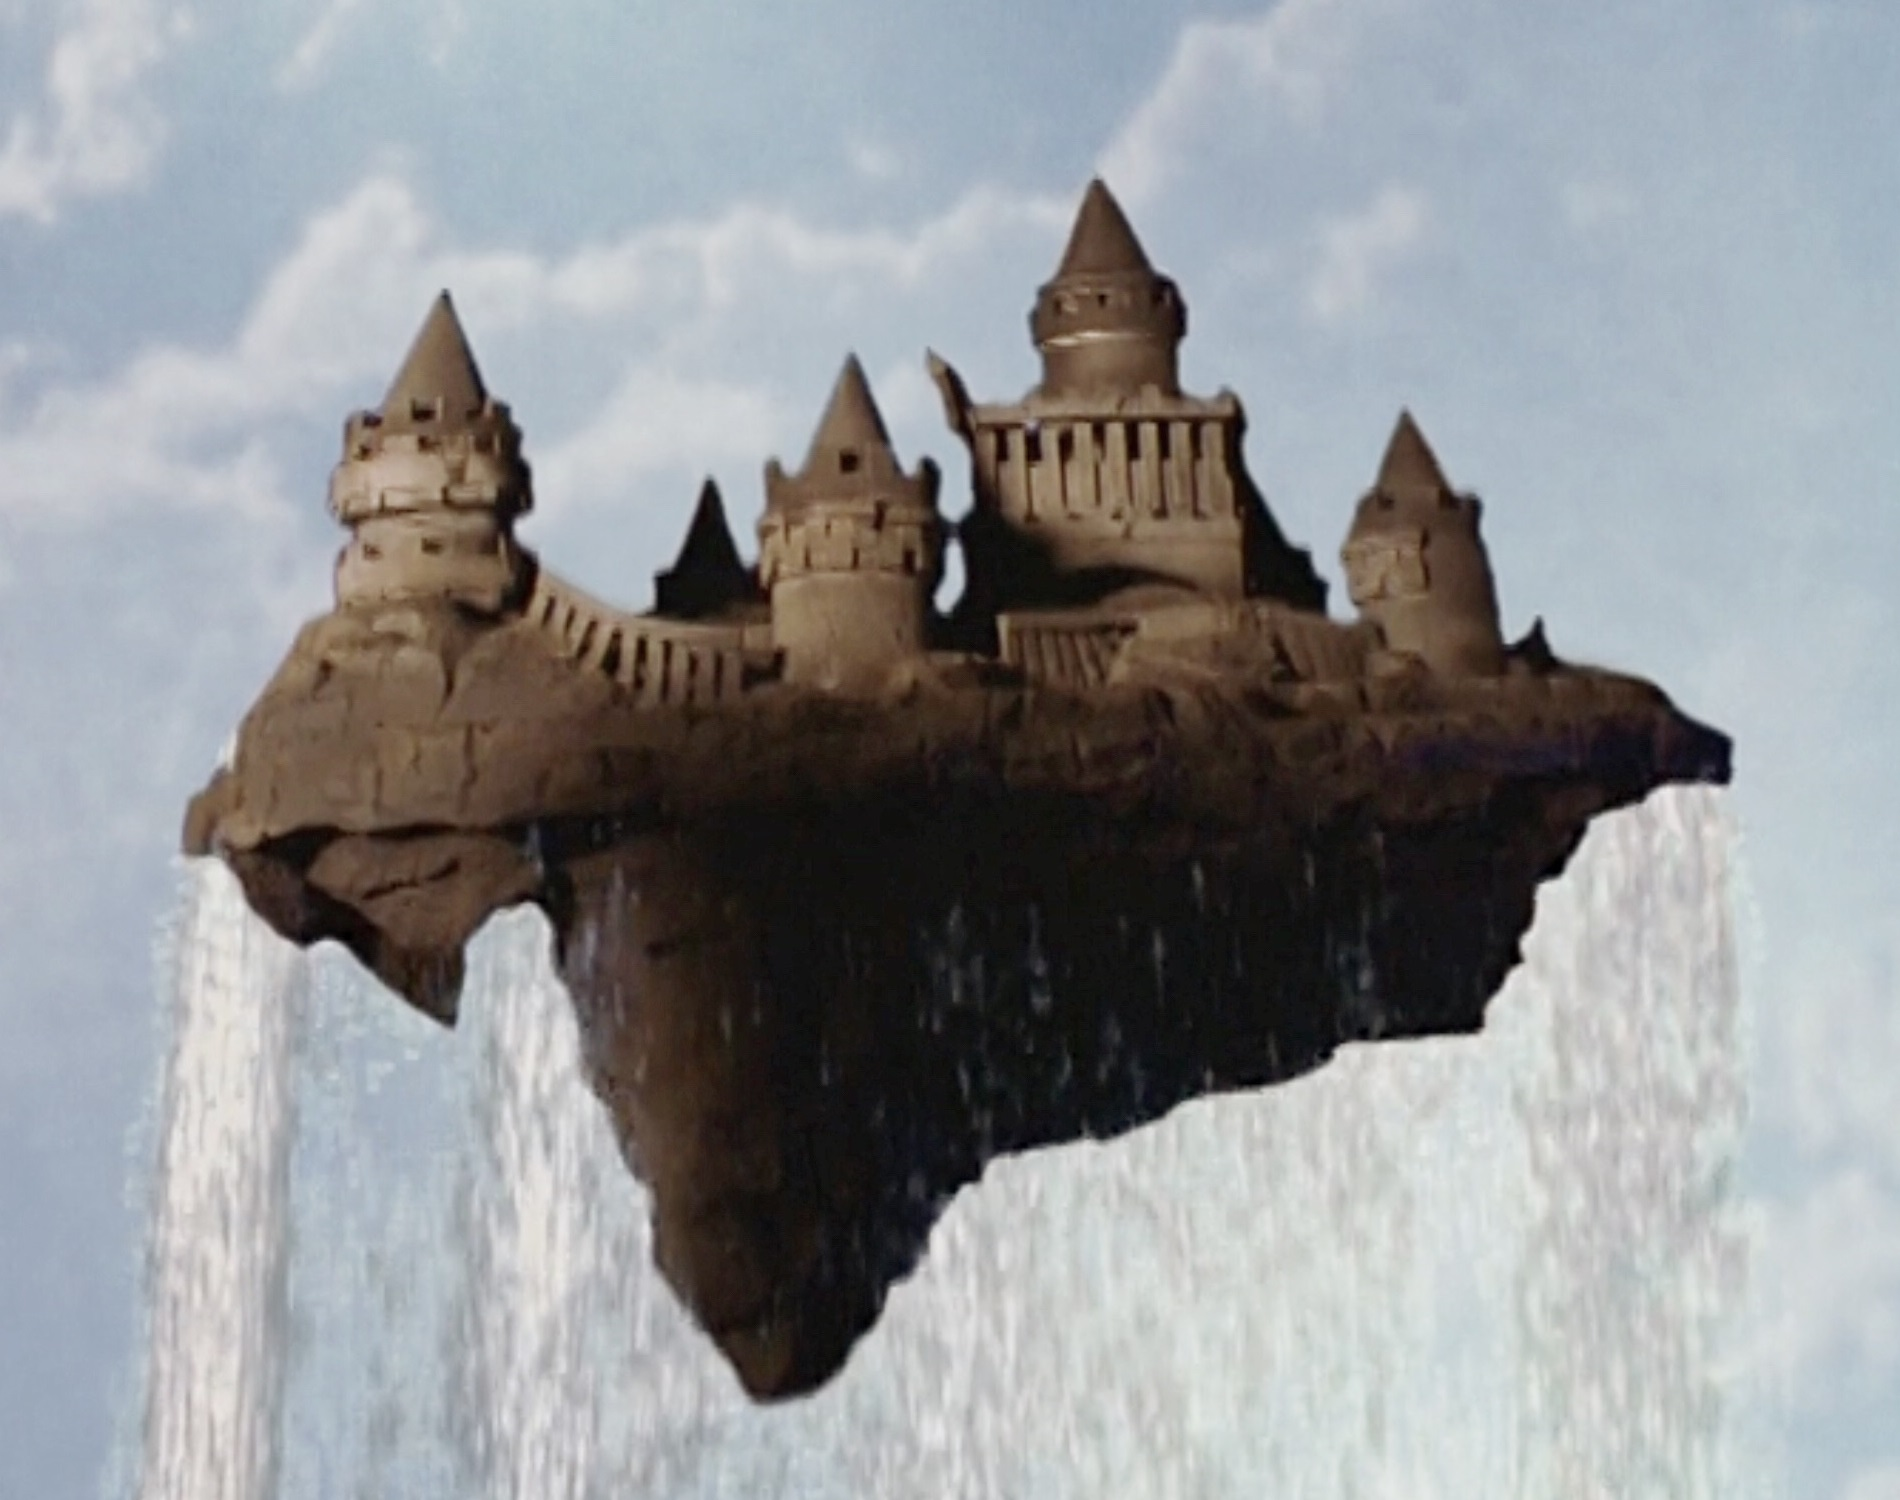 File:The Mutiny Castle.jpg